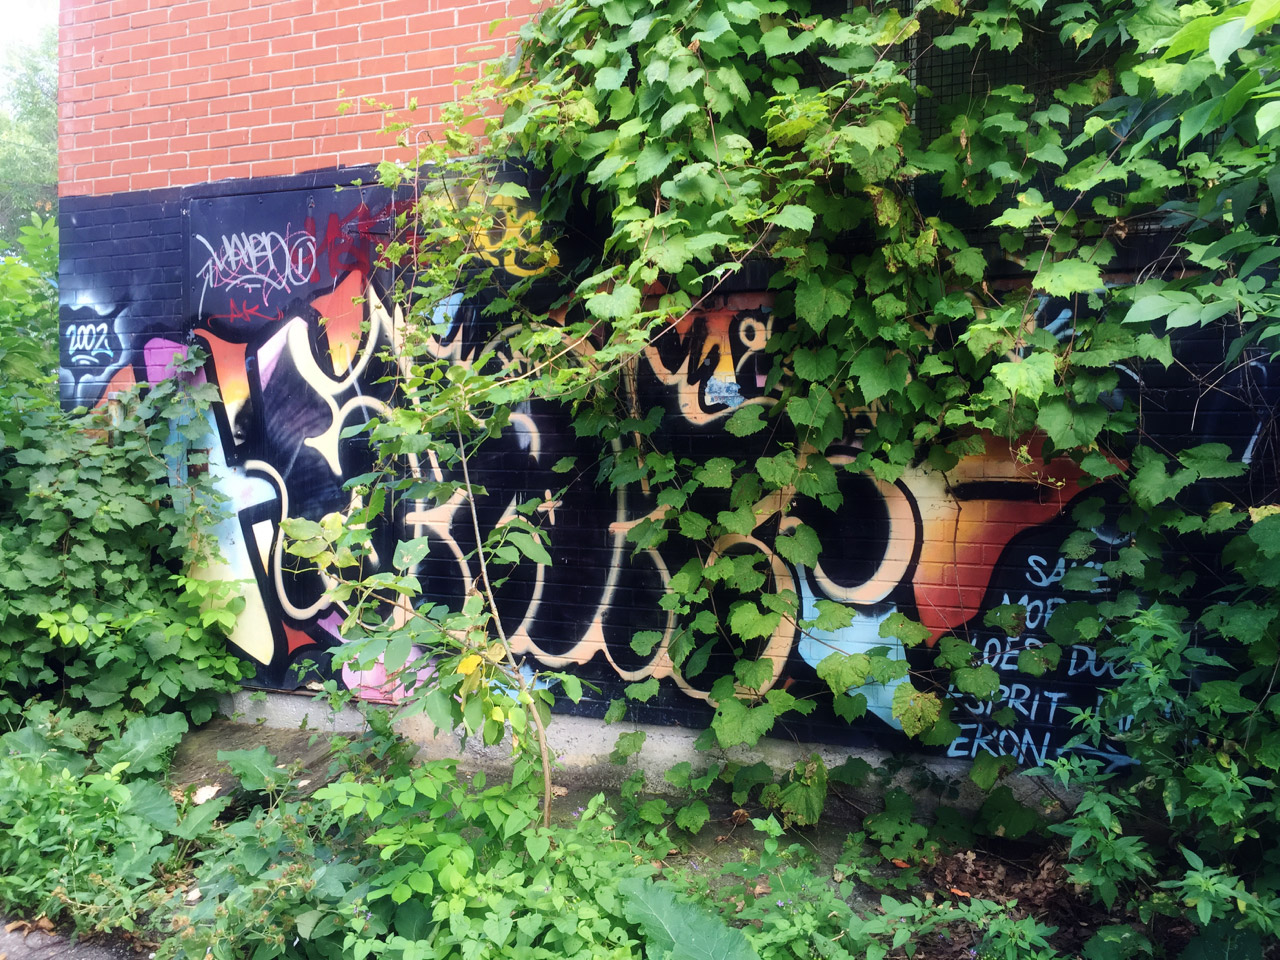 Overgrown graffiti